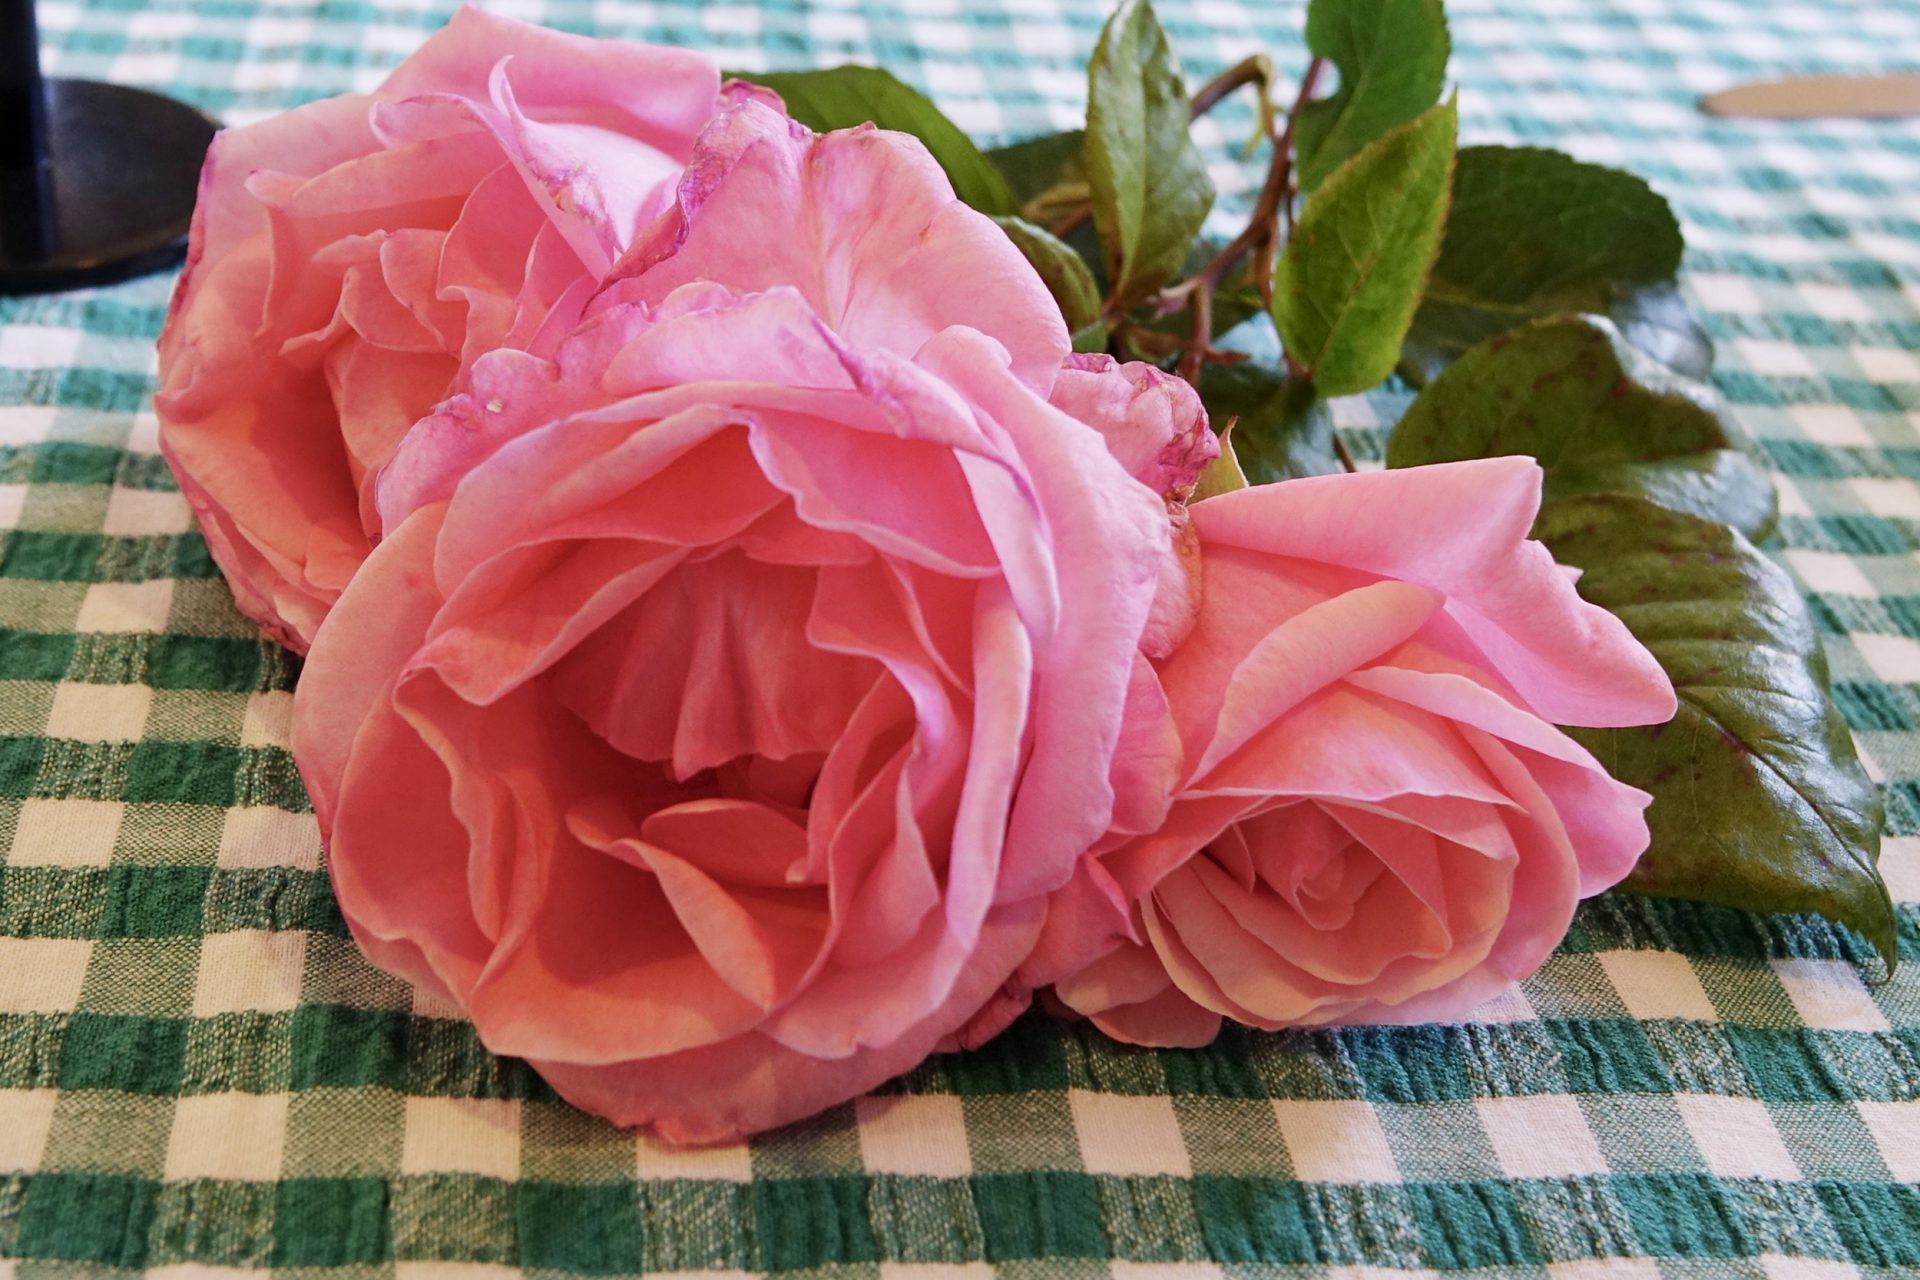 3 pink flowers lying on a green and white checked table cloth.